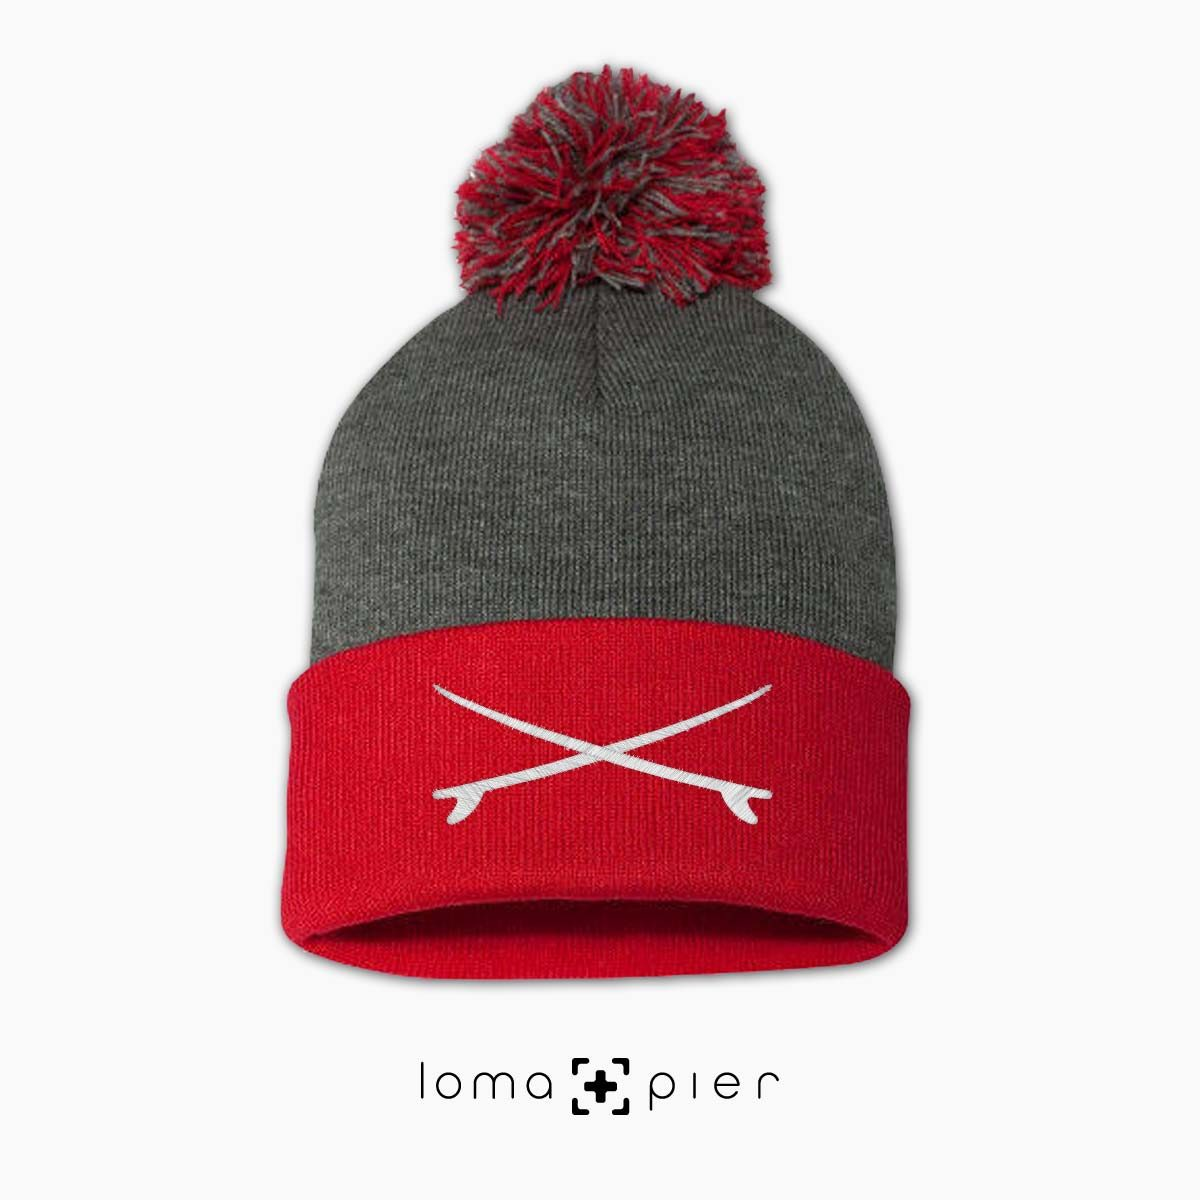 X MARKS THE SURF icon embroidered on a grey red pom pom beanie by loma+pier beanie store